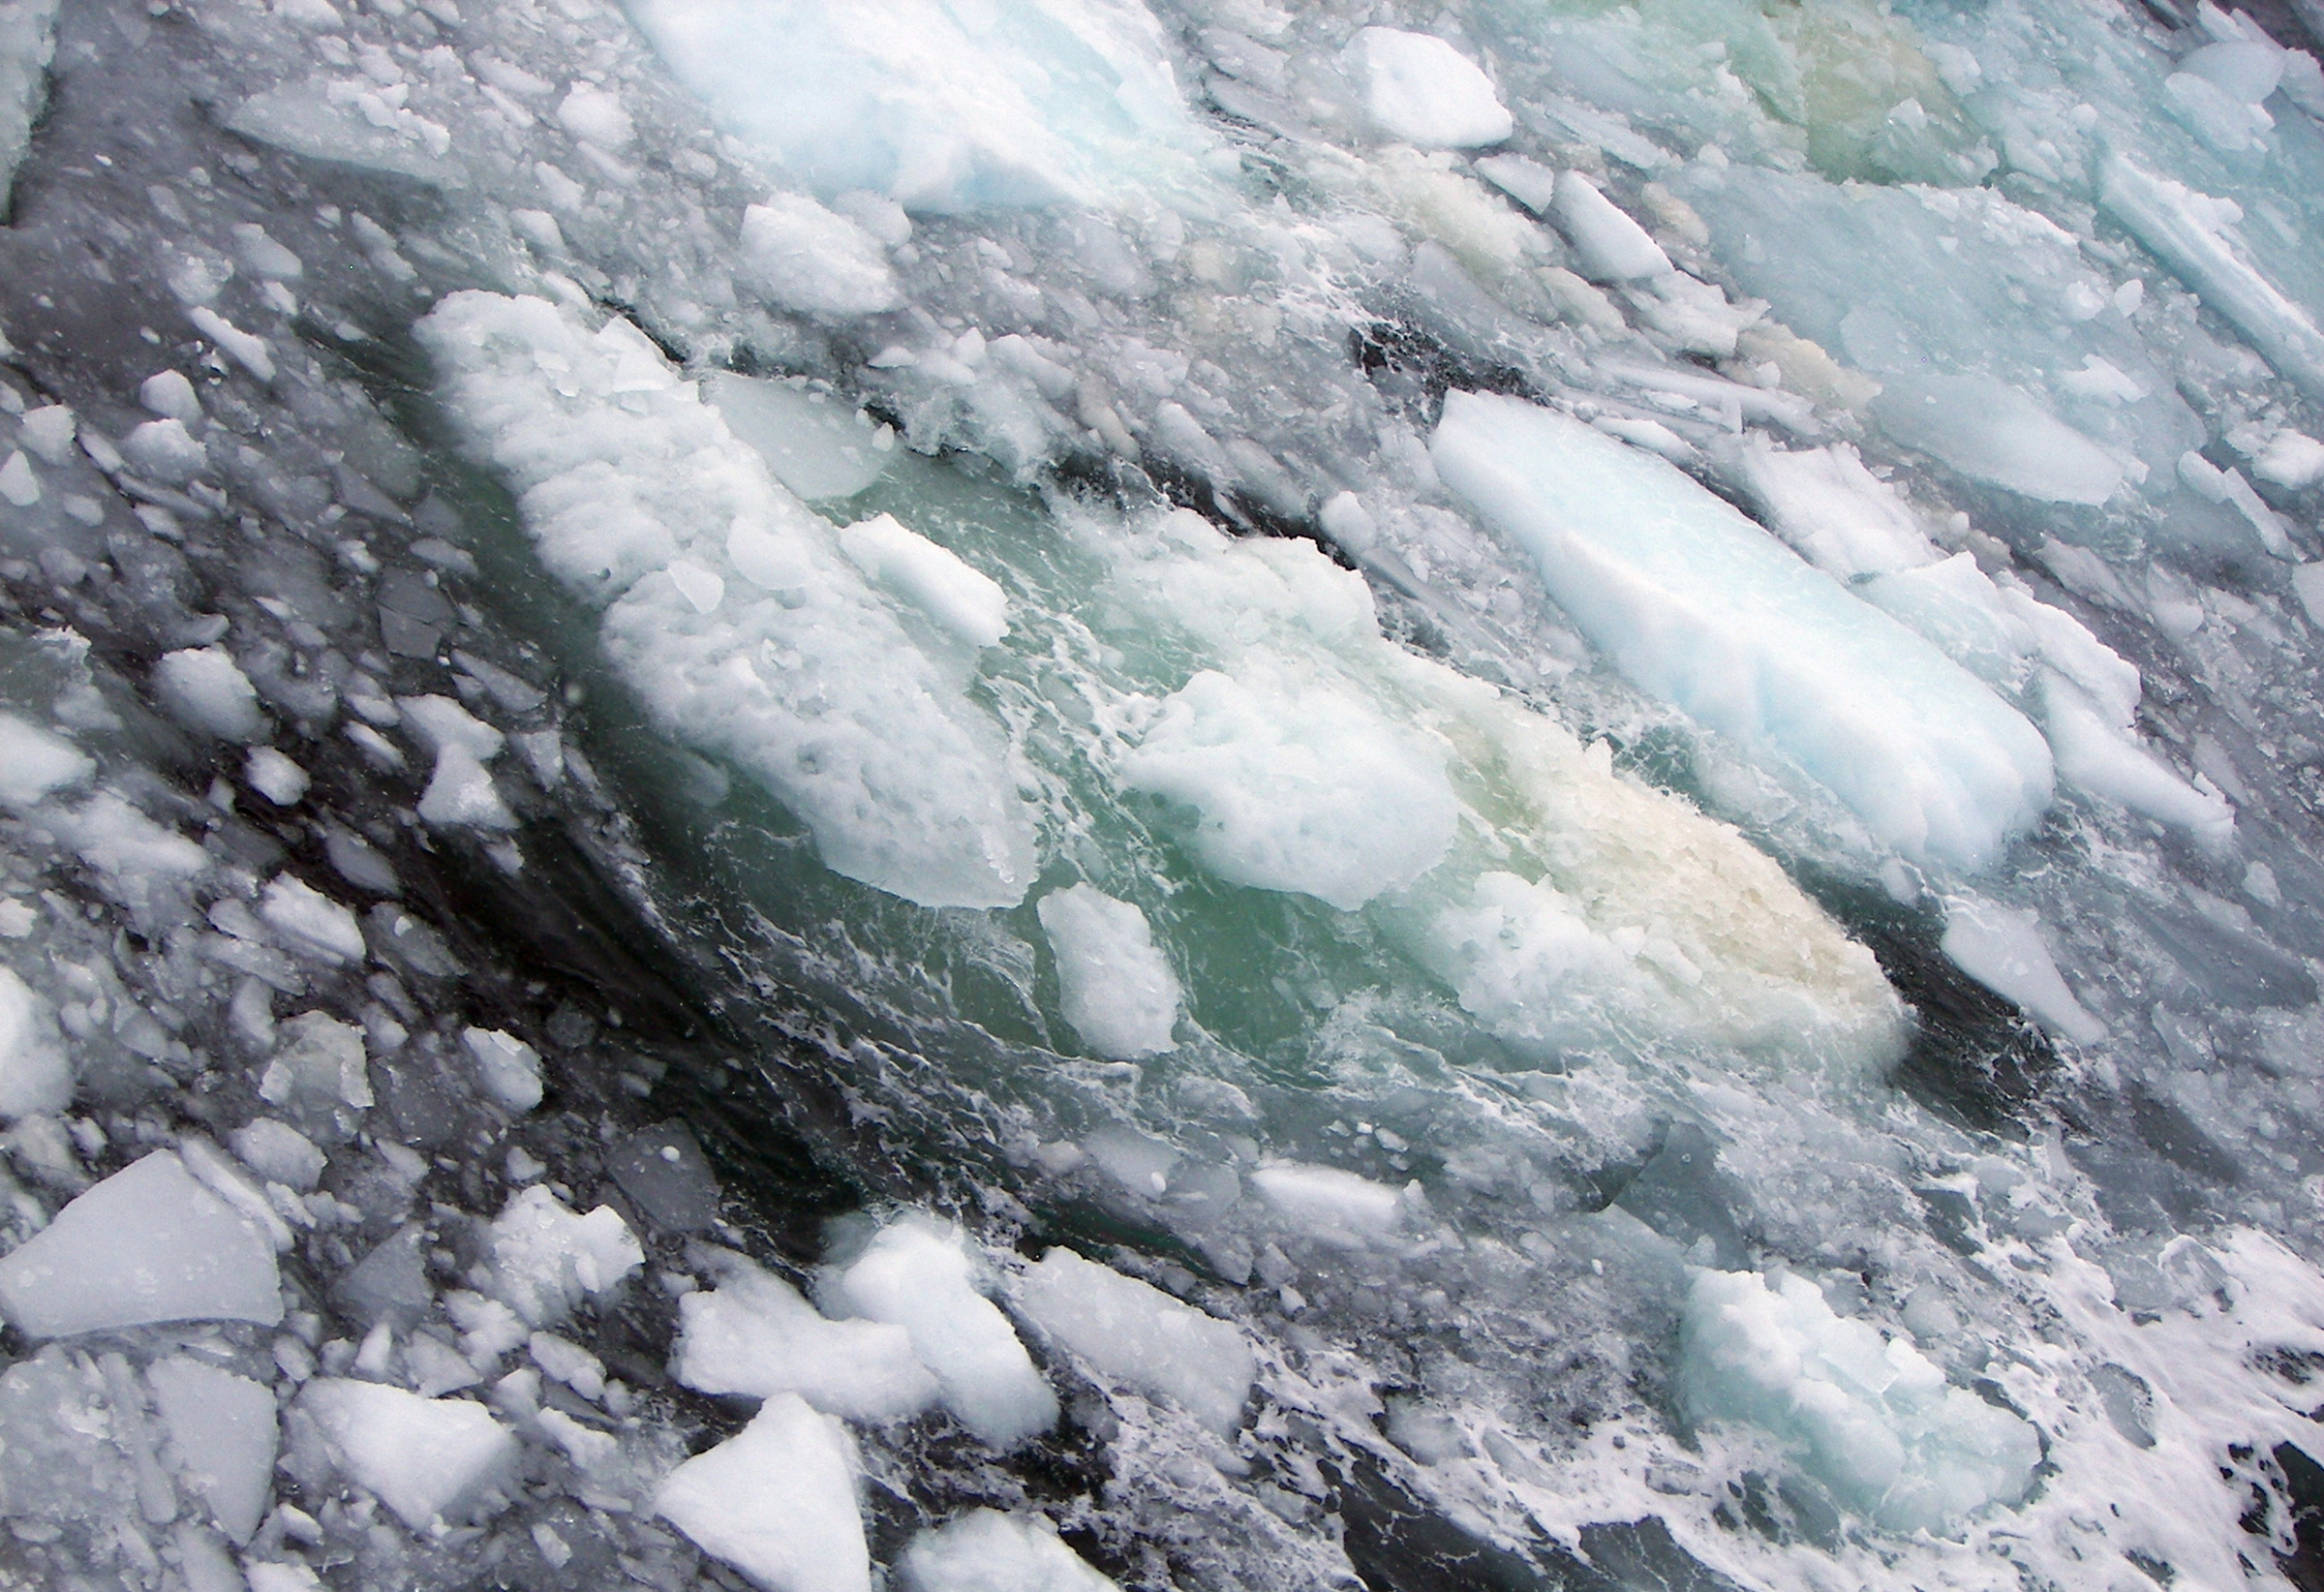 ice, sea water and methane bubbles are a common sight along the East Siberian Arctic Shelf